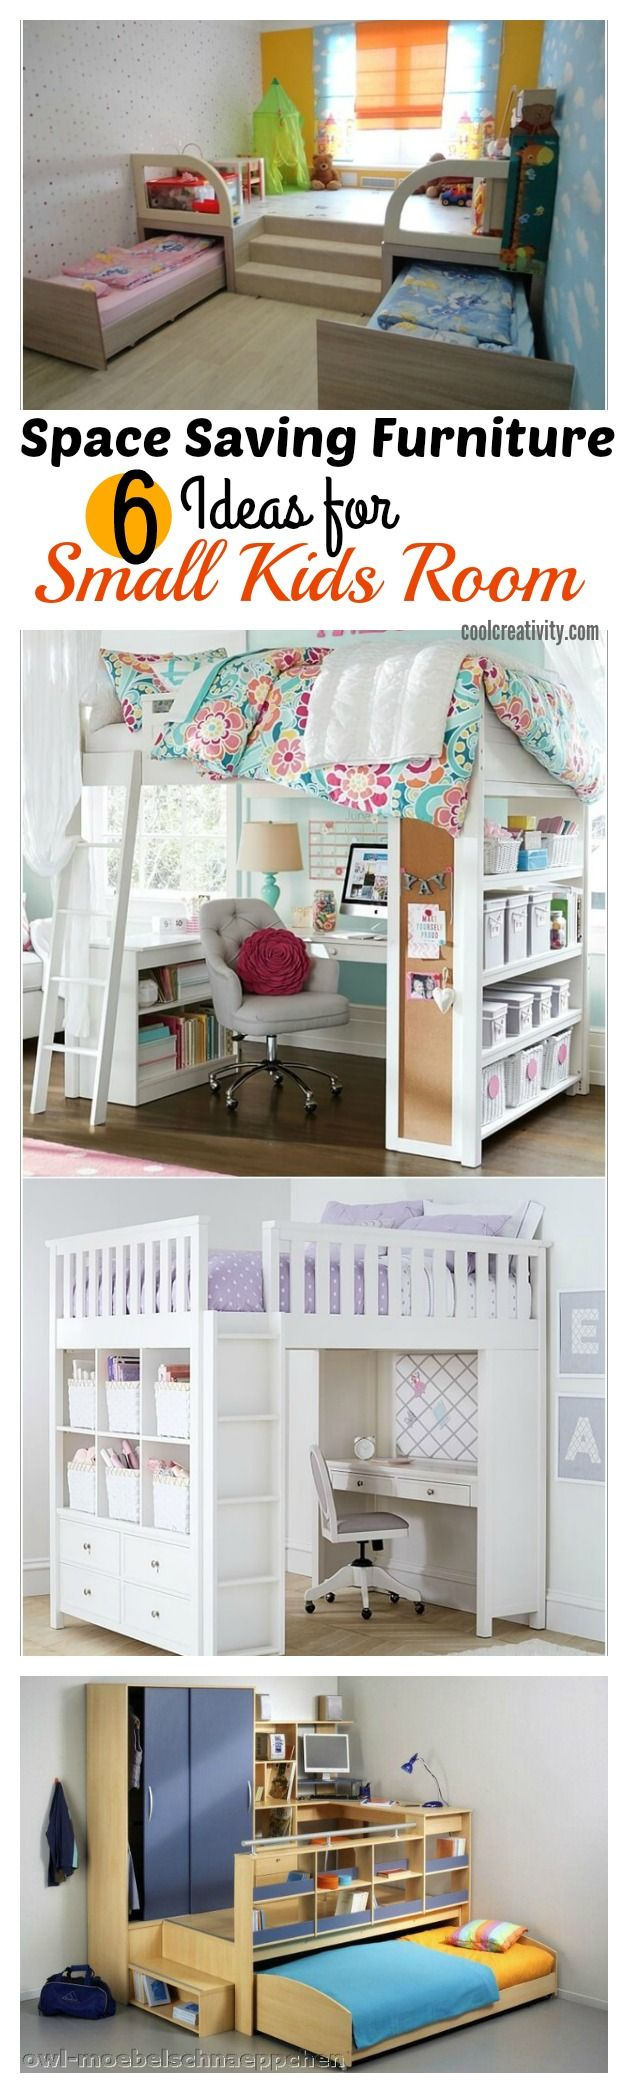 6 Space Saving Furniture Ideas for Small Kids Room. Best 25  Baby room furniture ideas on Pinterest   Small baby rooms